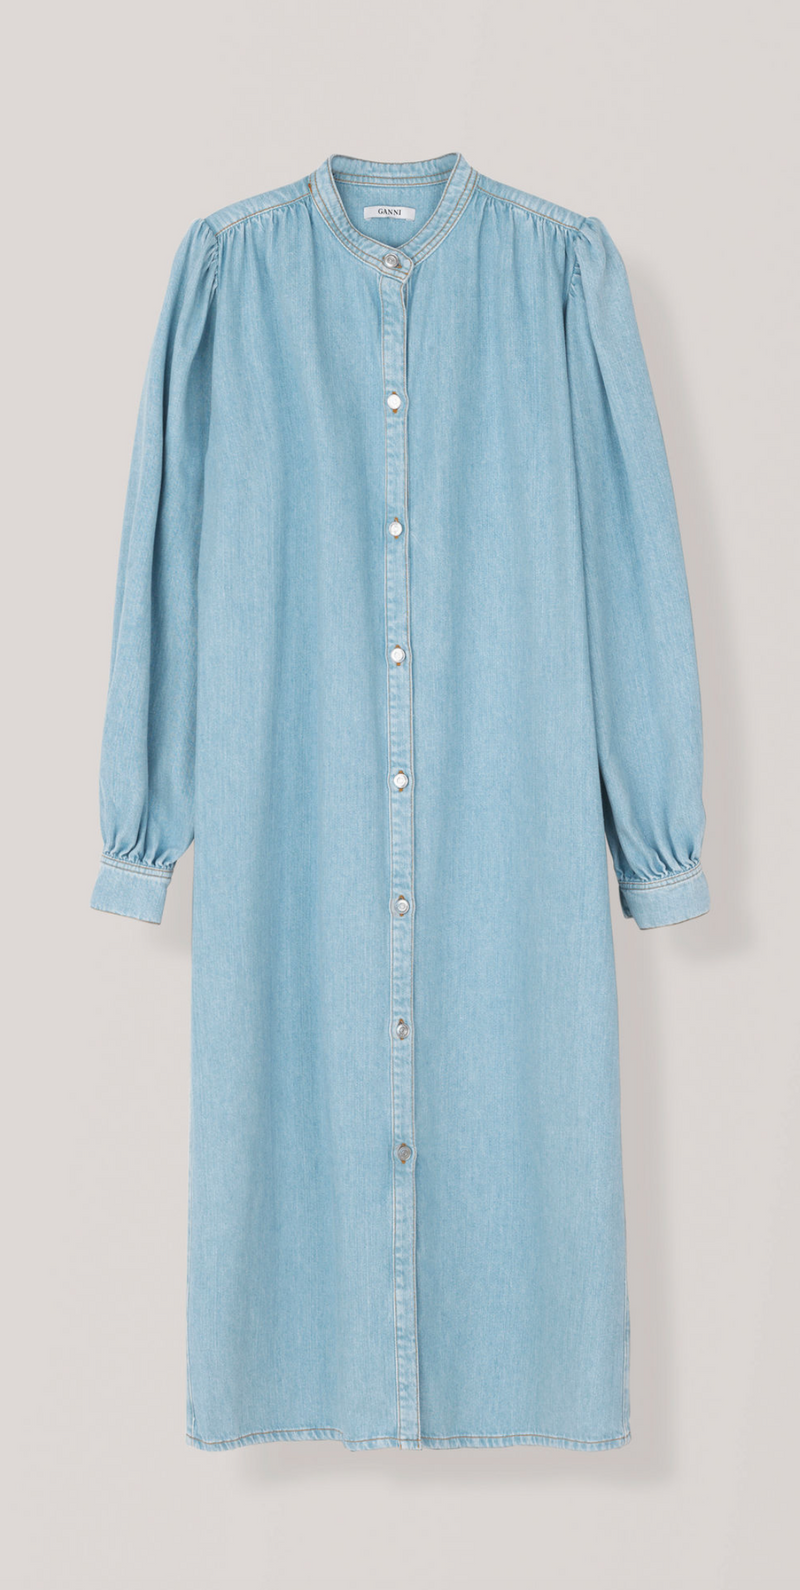 [GANNI] 가니 원피스 (SOFT DENIM DRESS)